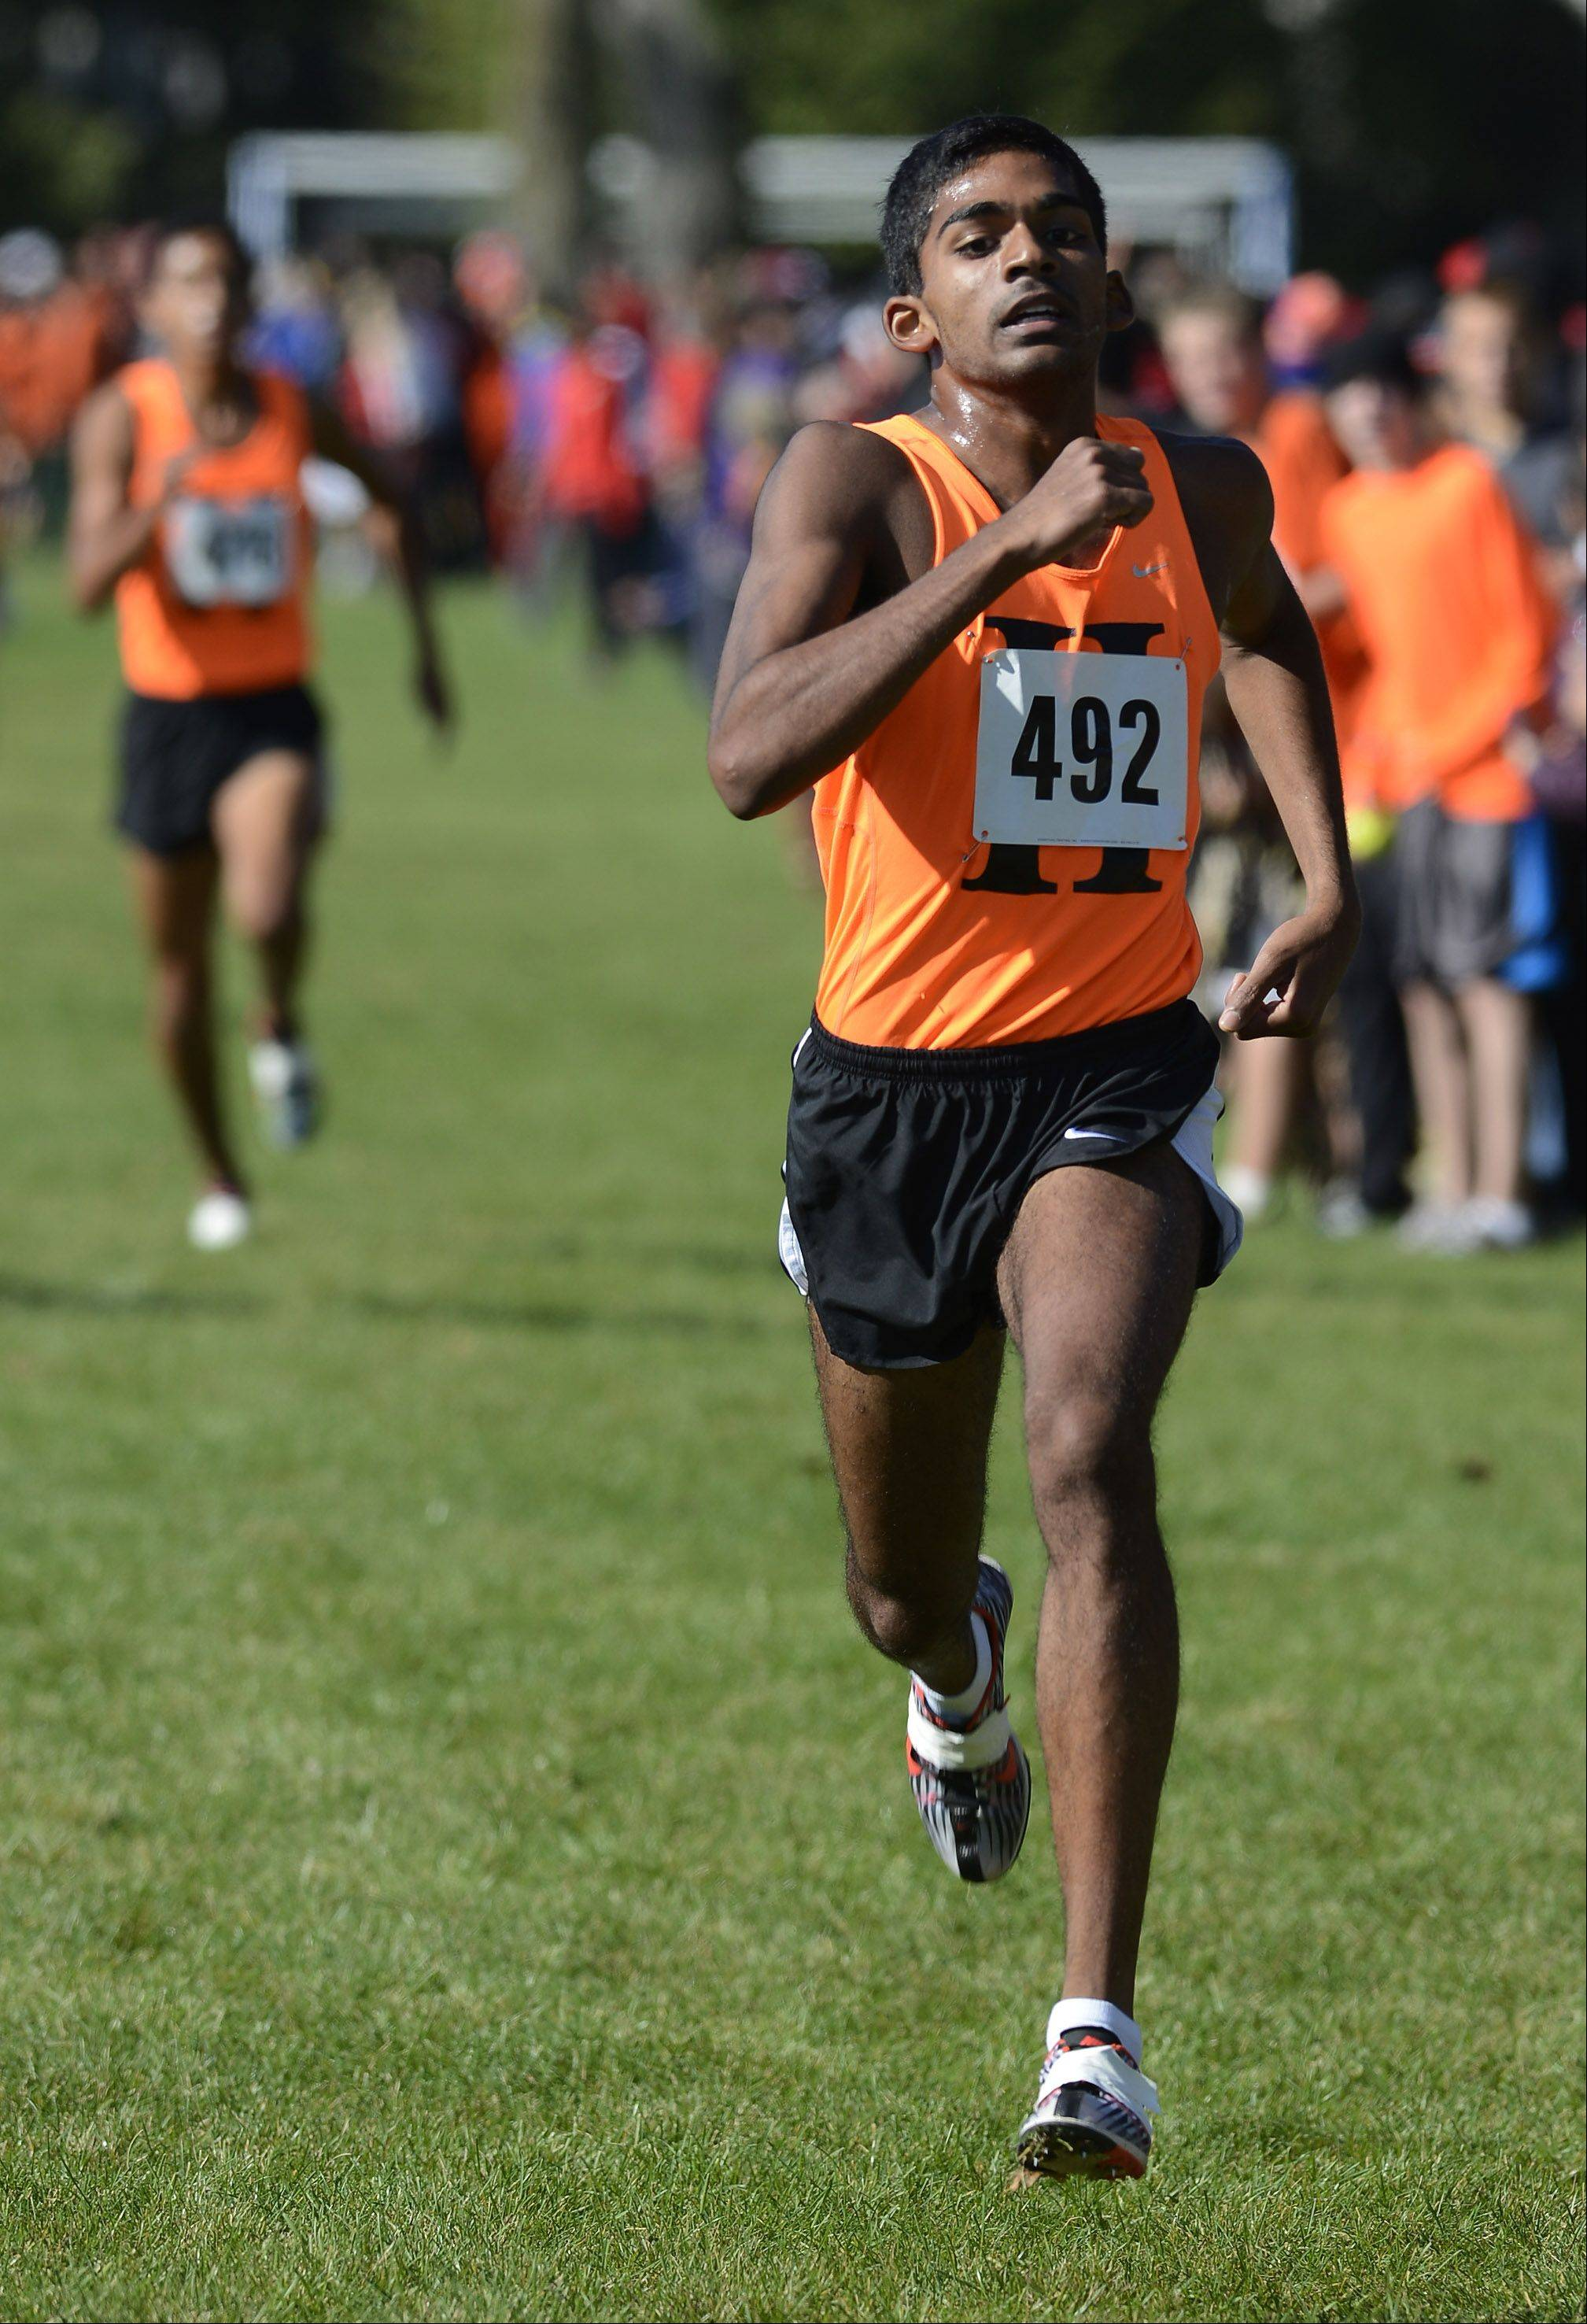 Senior Andy Philipose heads for a sixth-place individual finish for Mid-Suburban League team champ Hersey during the MSL meet last month at Willow Stream Park in Buffalo Grove.